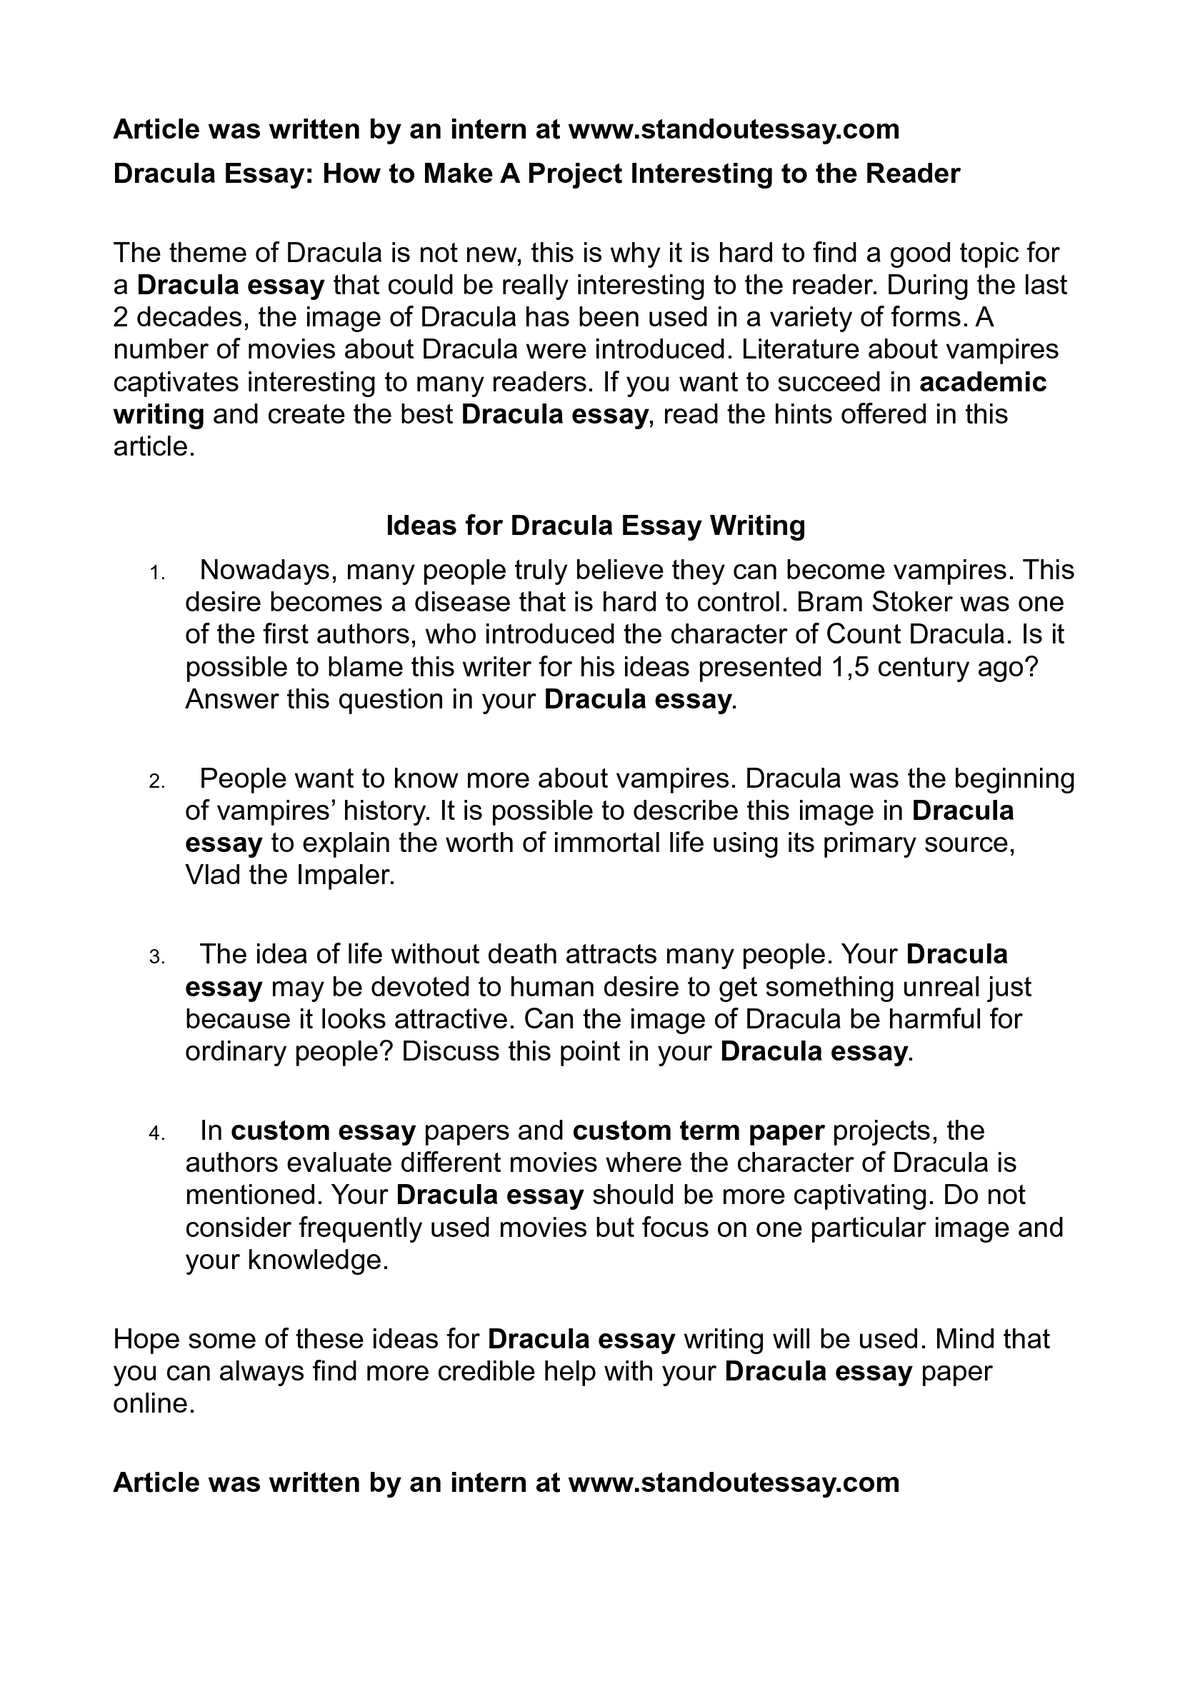 English Language Essay  Science And Literature Essay also English Sample Essays Calamo  Dracula Essay How To Make A Project Interesting To The Reader Health And Social Care Essays